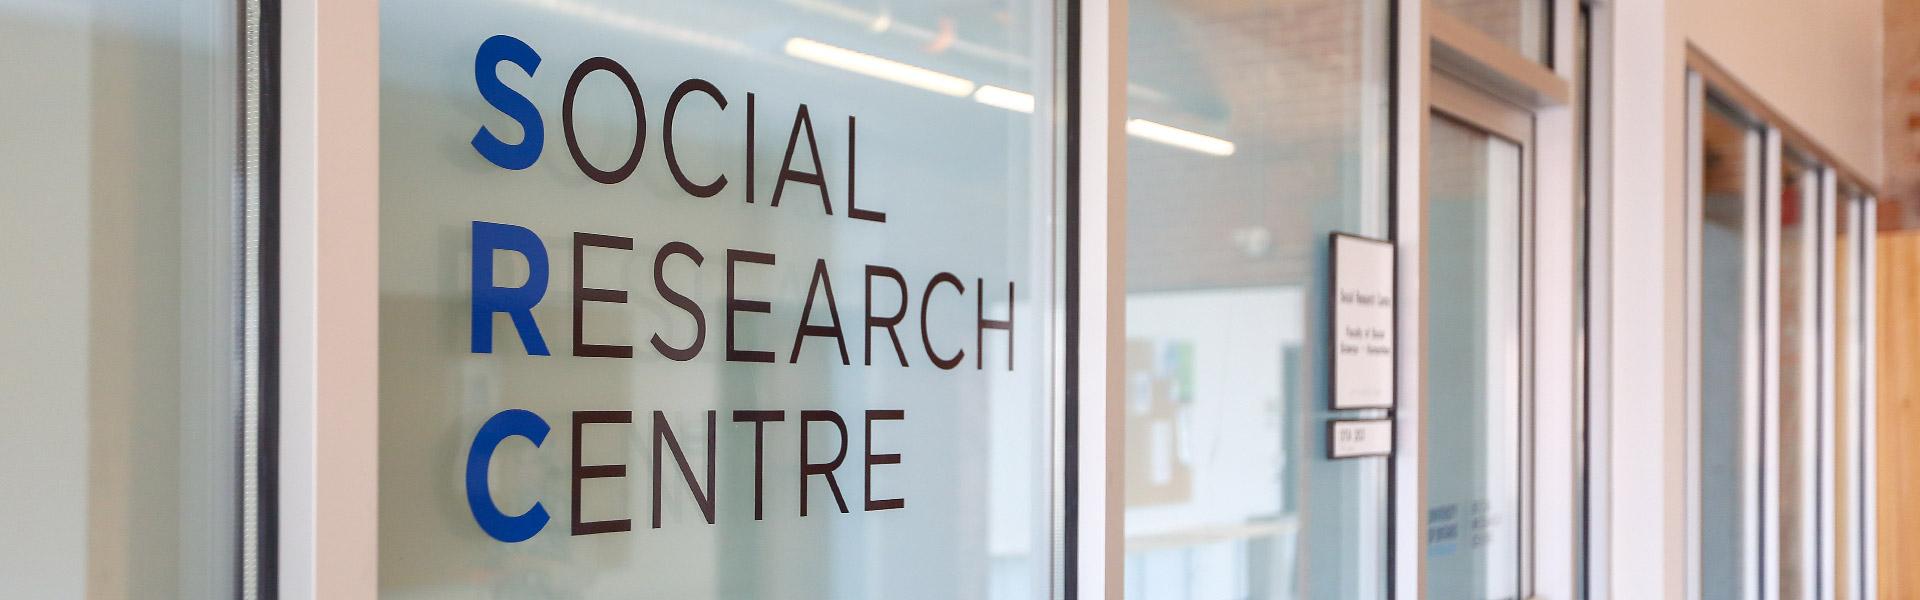 Social Research Centre